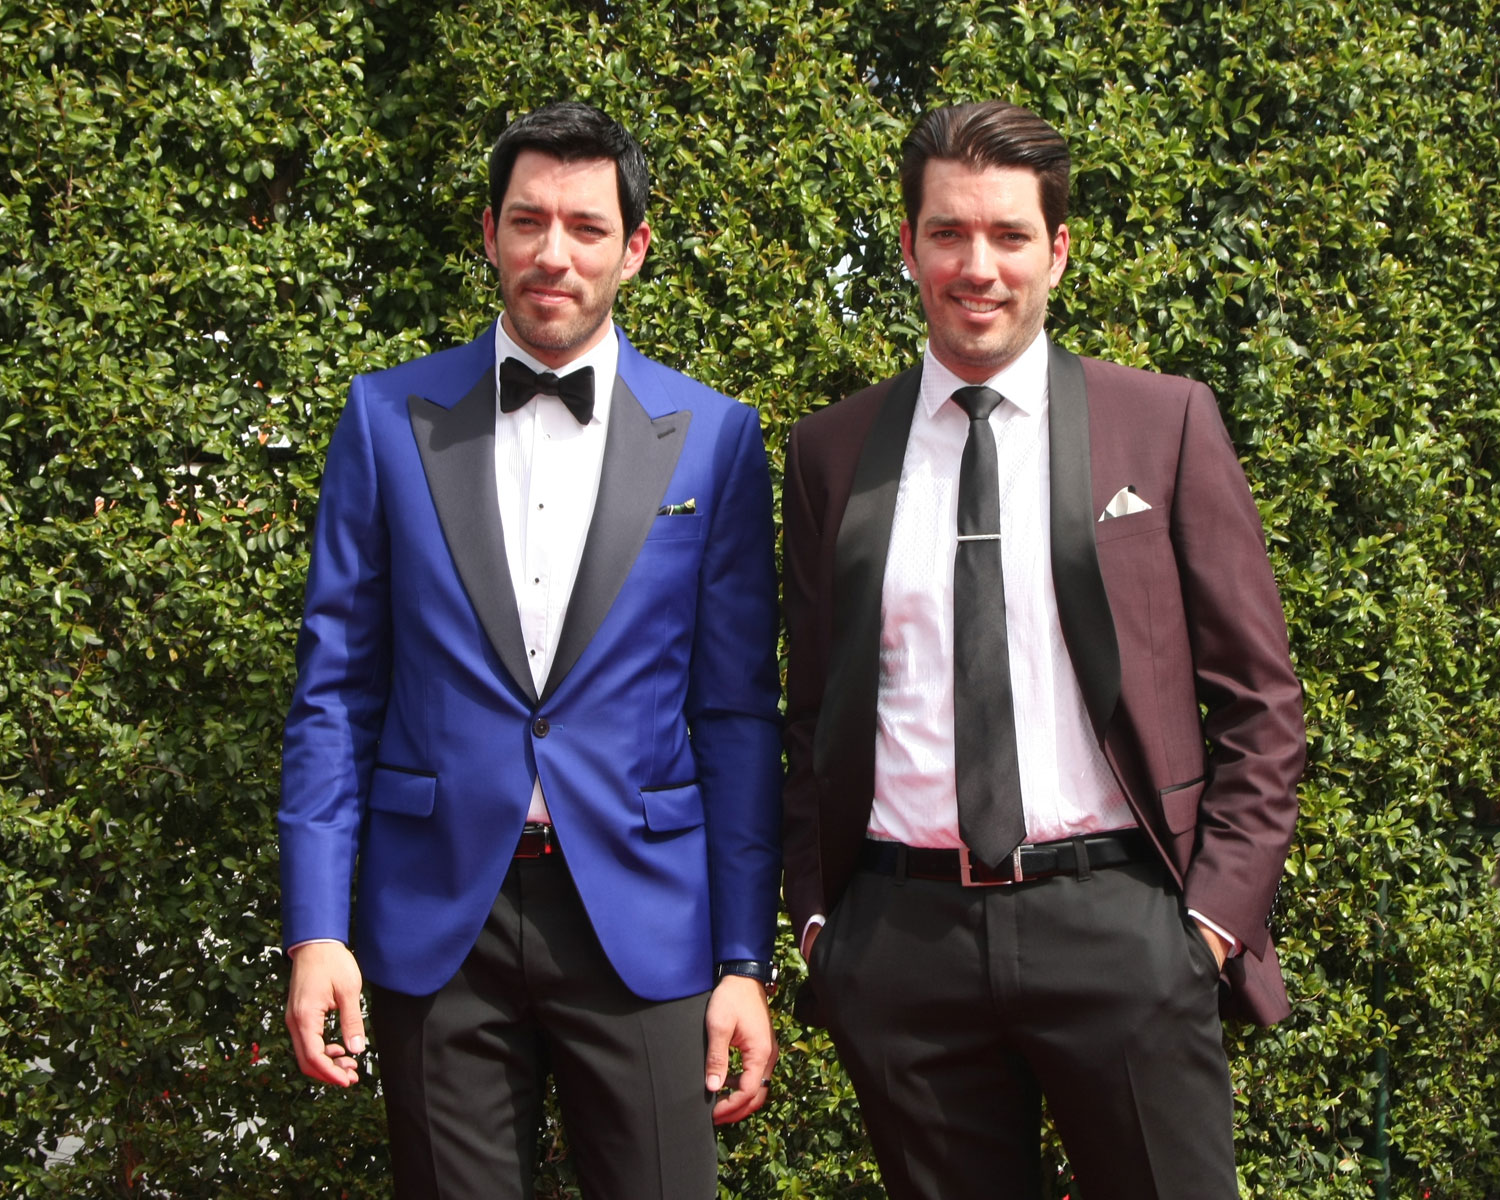 Drew scott property brothers the image Who are the property brothers